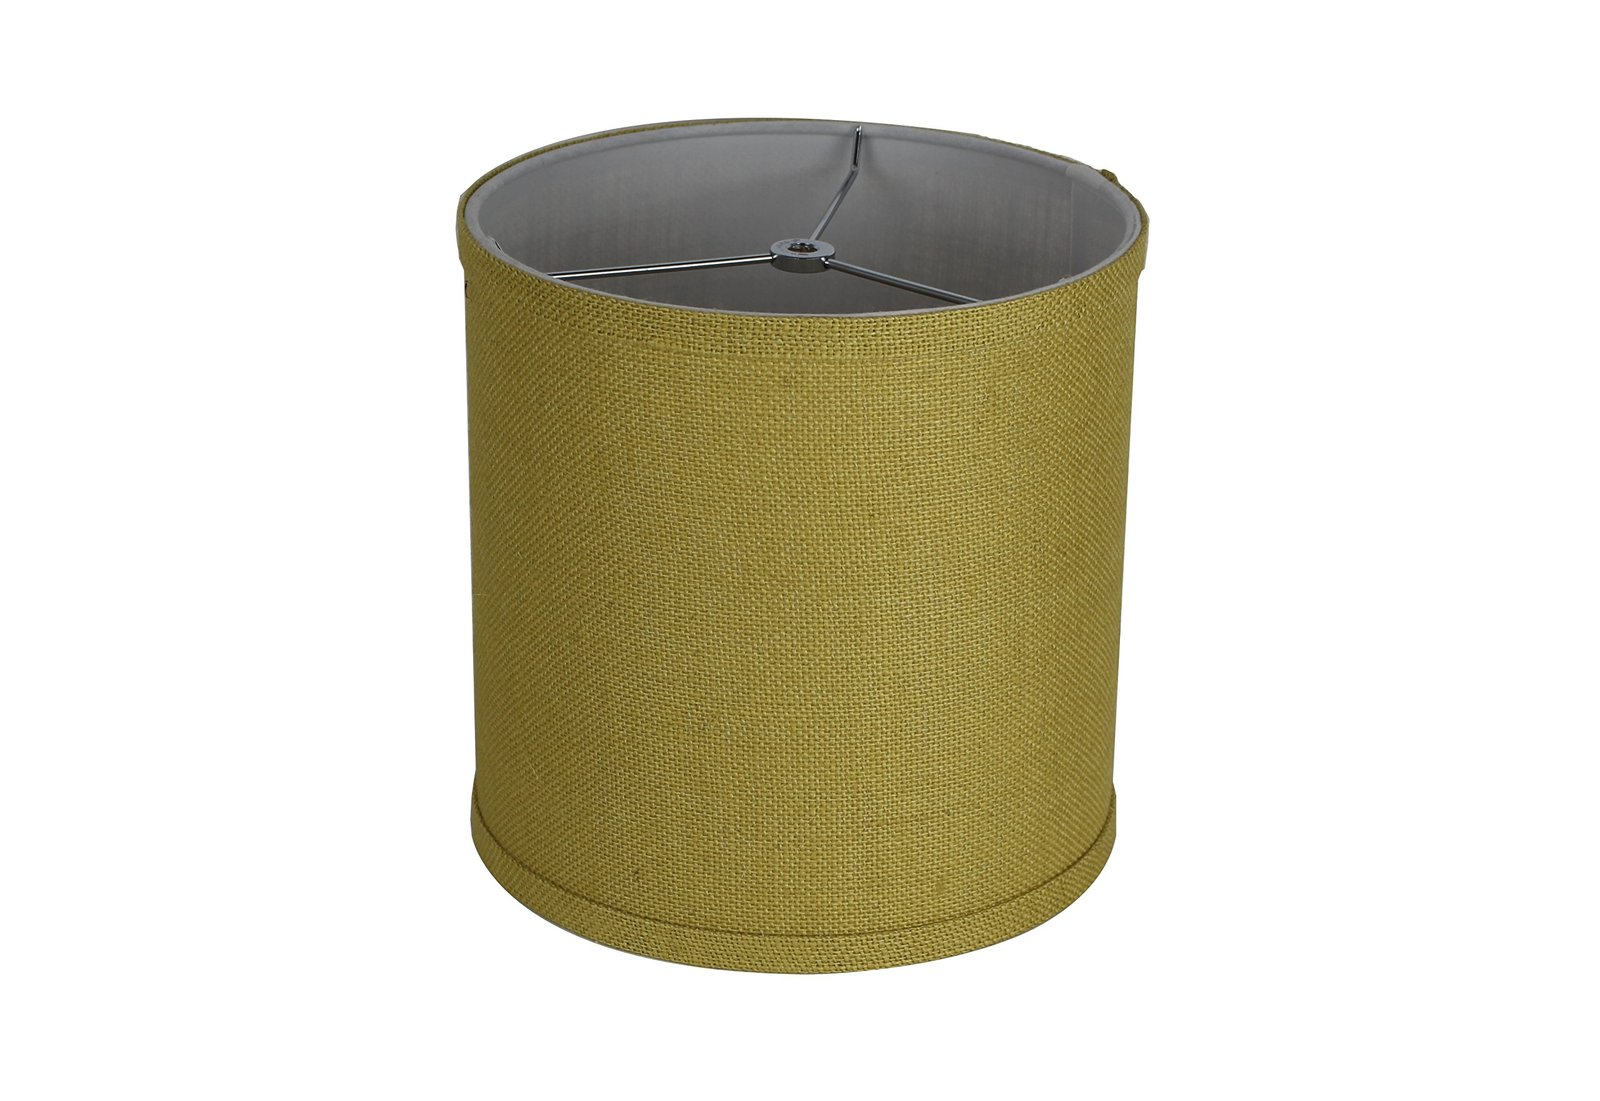 Urbanest Classic Drum Burlap Lampshade, 10-inch by 10-inch by 10-inch, Mustard Y image 3